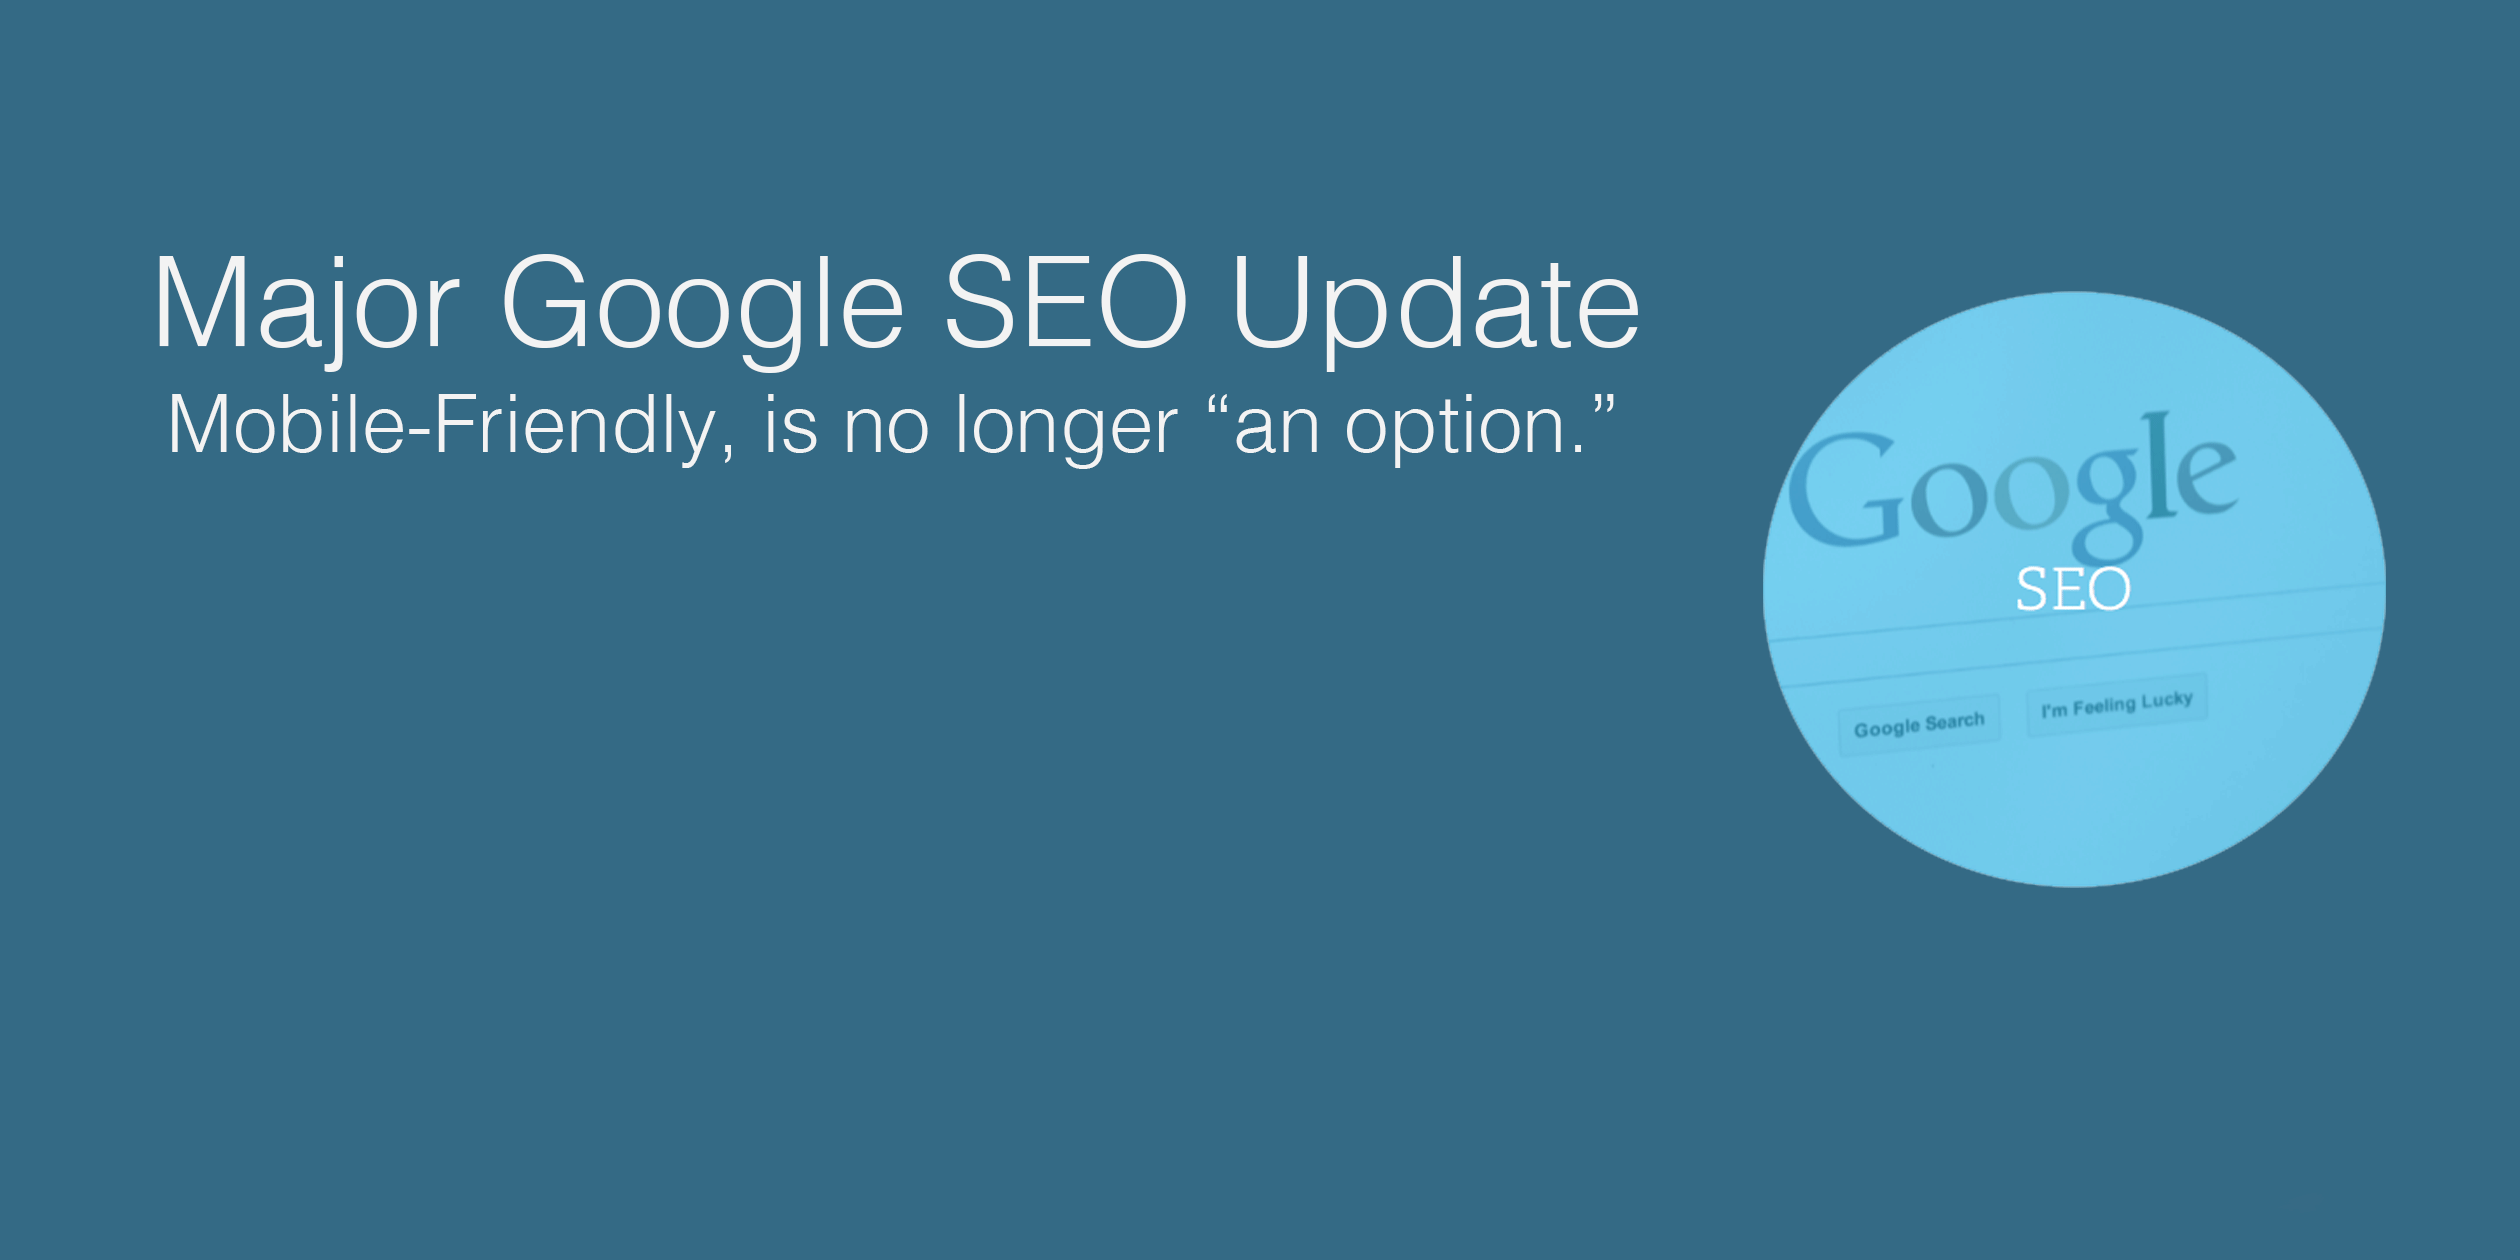 Google SEO Update